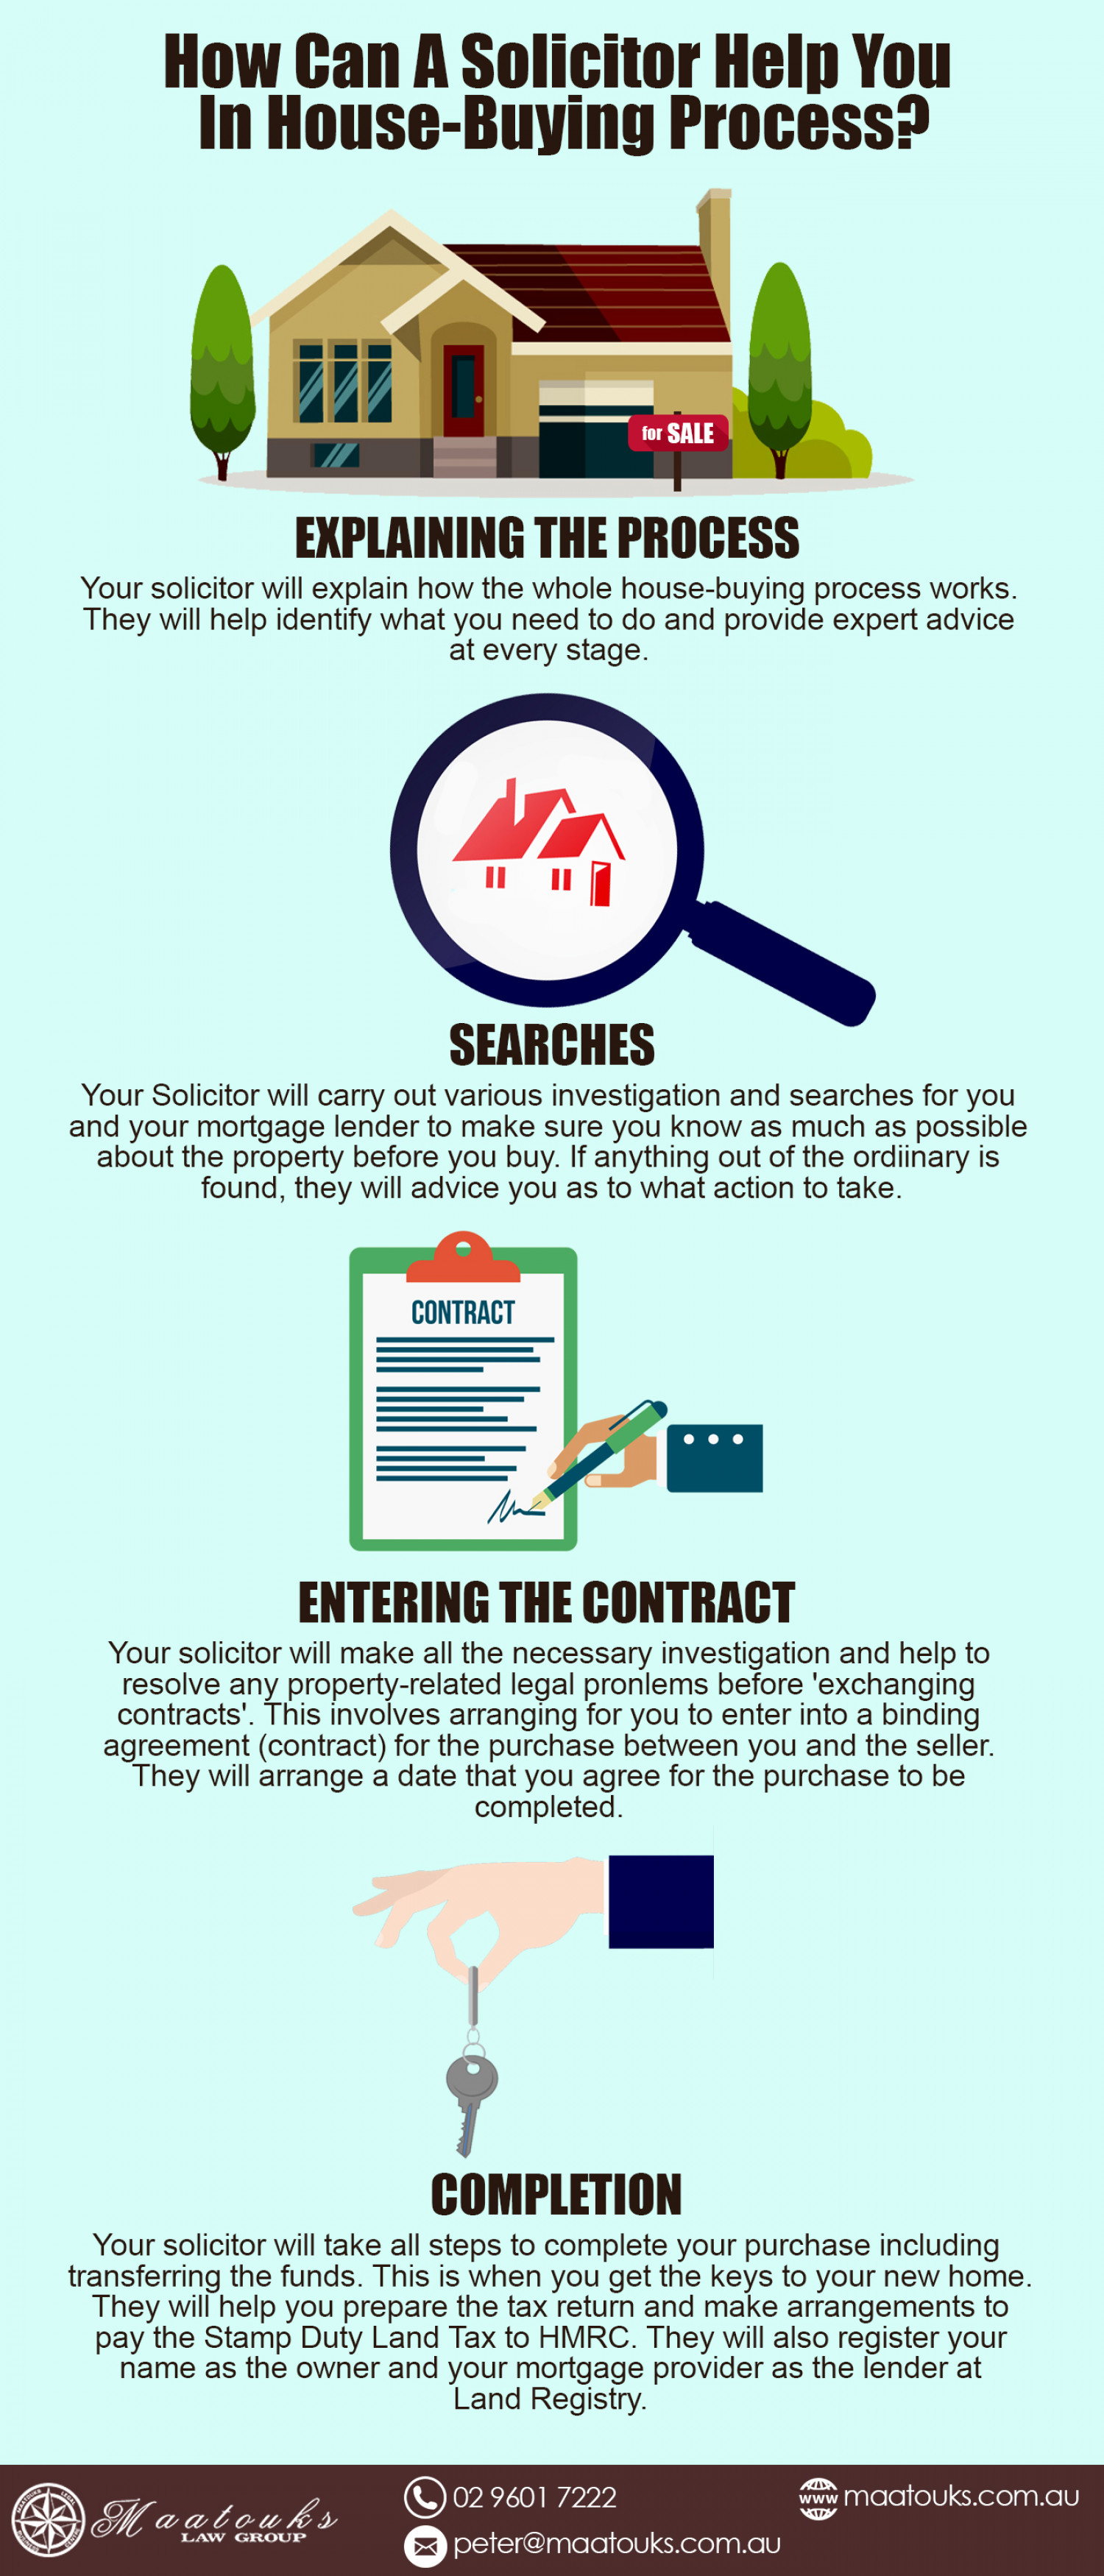 How Can A Solicitor Help You In House-Buying Process? Infographic